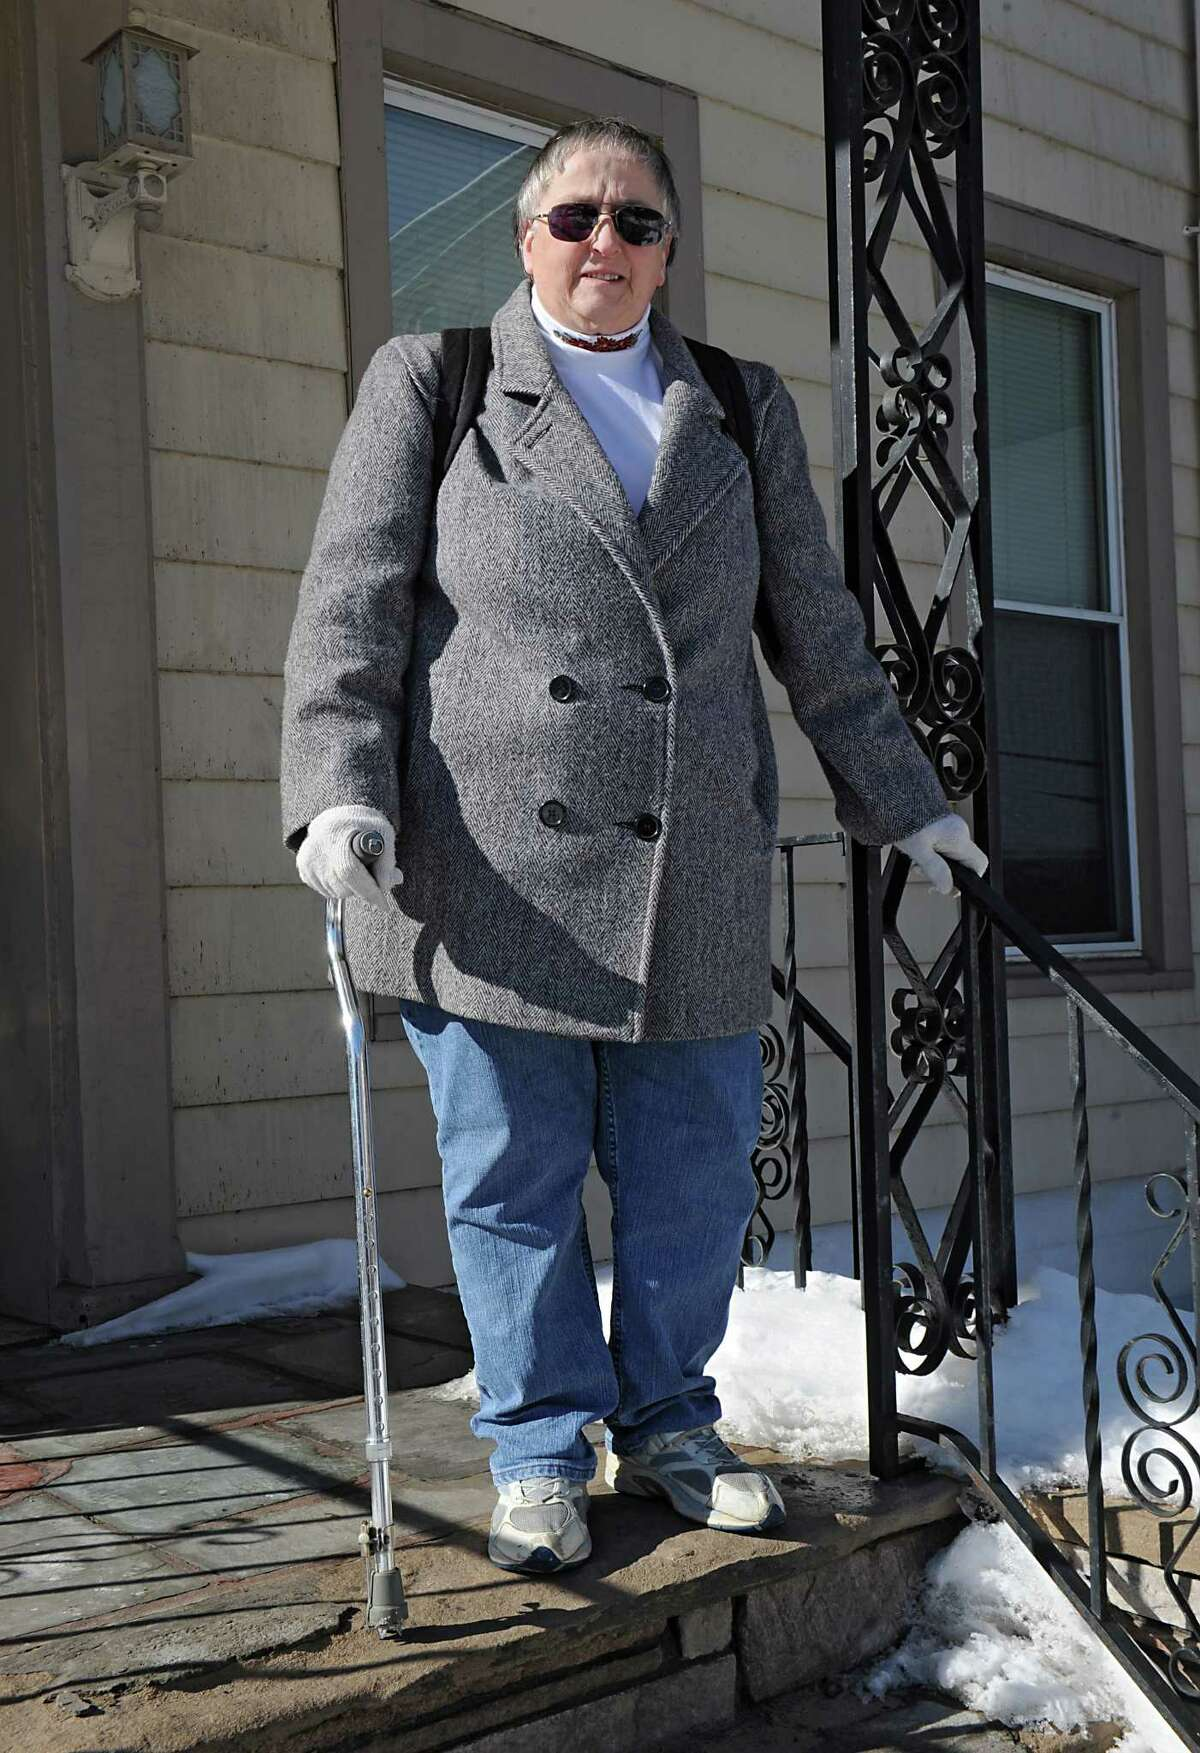 Candace Woodard stands outside her home on Friday, Feb. 13, 2015 in Cohoes, N.Y. Woodard is having trouble getting her own medical records from her doctor. She has a lot of information she is trying to pull together for a disability case. (Lori Van Buren / Times Union)